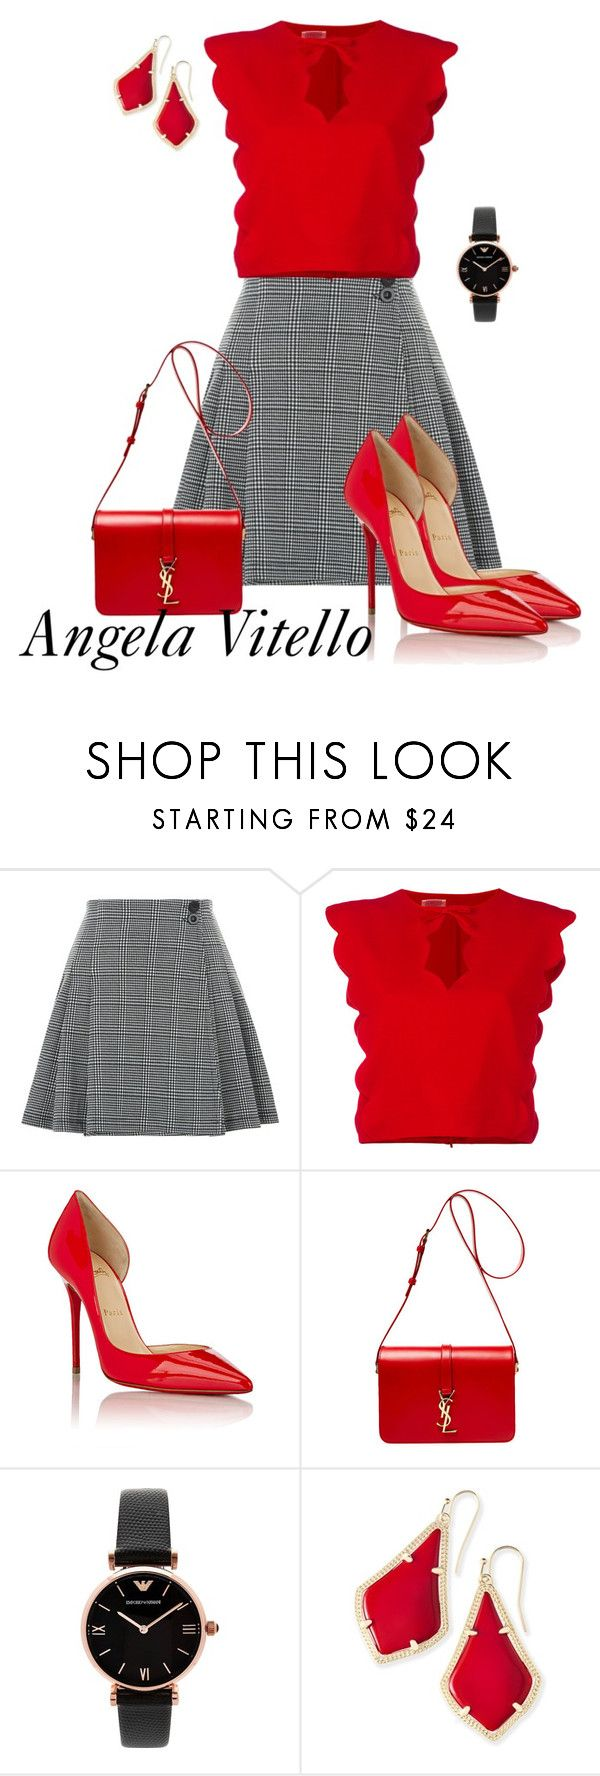 """Untitled #1013"" by angela-vitello on Polyvore featuring Giambattista Valli, Christian Louboutin, Yves Saint Laurent, Emporio Armani and Kendra Scott"